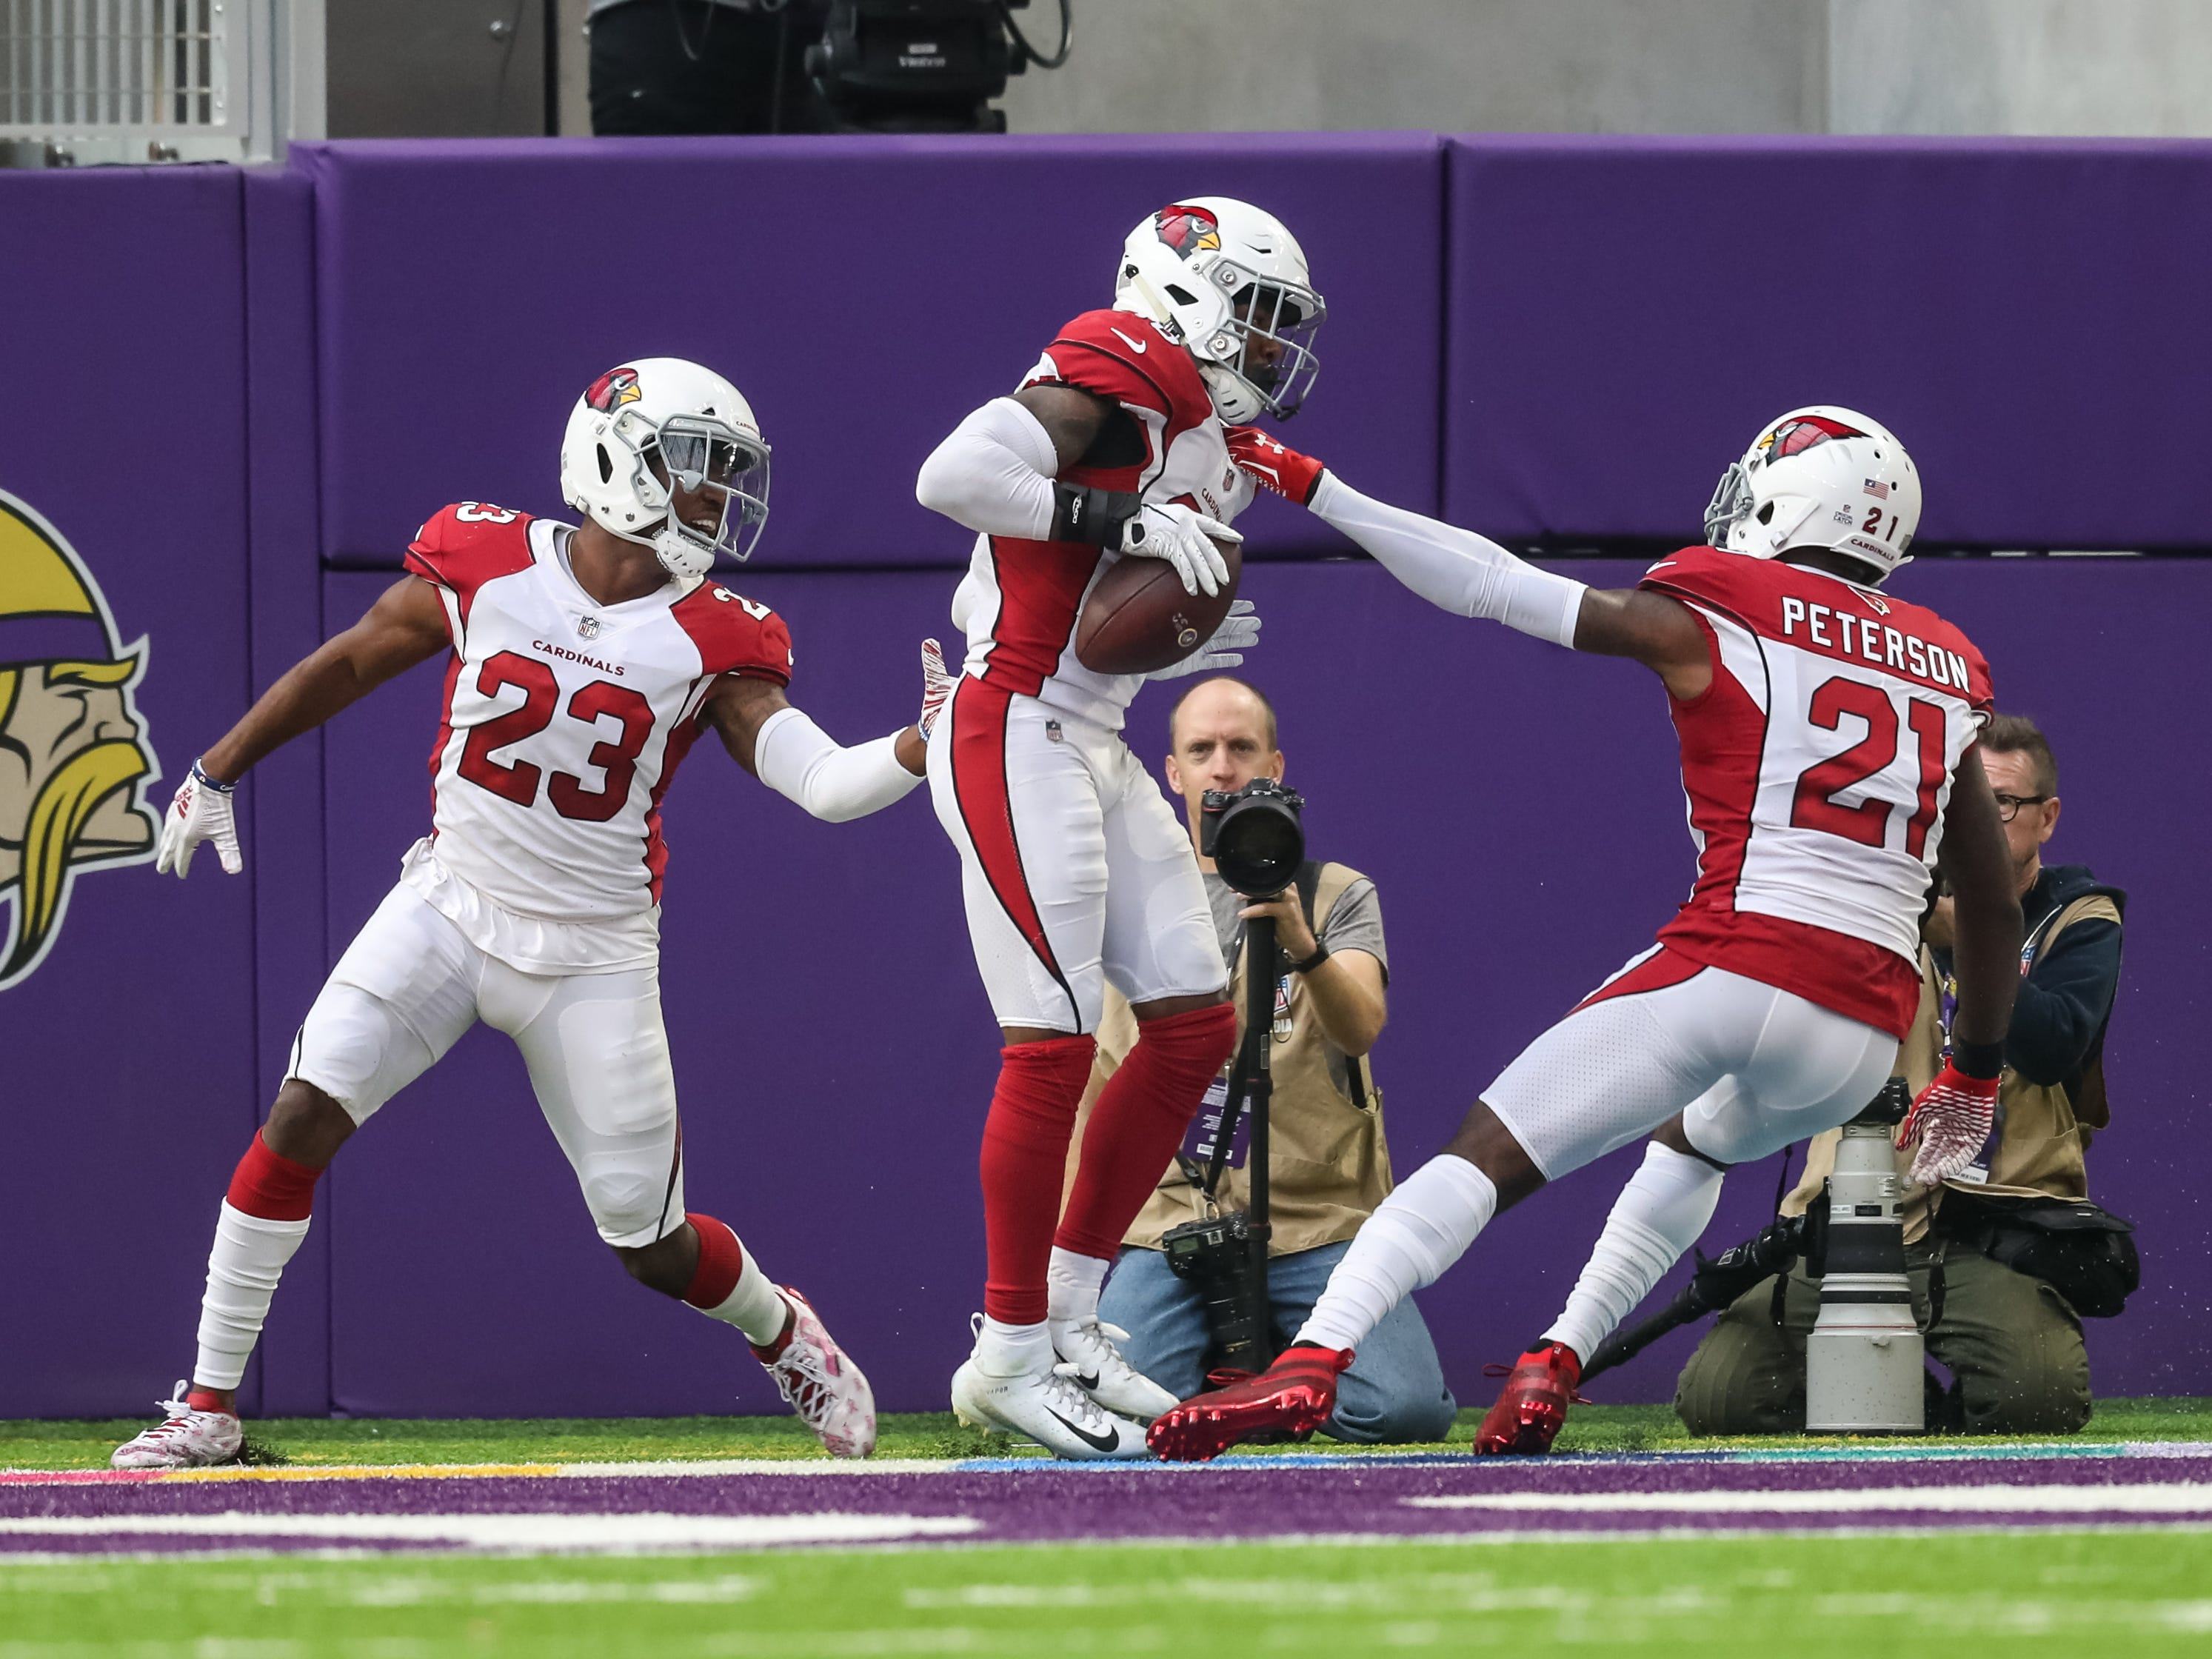 Oct 14, 2018; Minneapolis, MN, USA; Arizona Cardinals safety Budda Baker (36) celebrates his touchdown with cornerback Patrick Peterson (21) and cornerback Bene Benwikere (23) during the second quarter against the Minnesota Vikings at U.S. Bank Stadium. Mandatory Credit: Brace Hemmelgarn-USA TODAY Sports